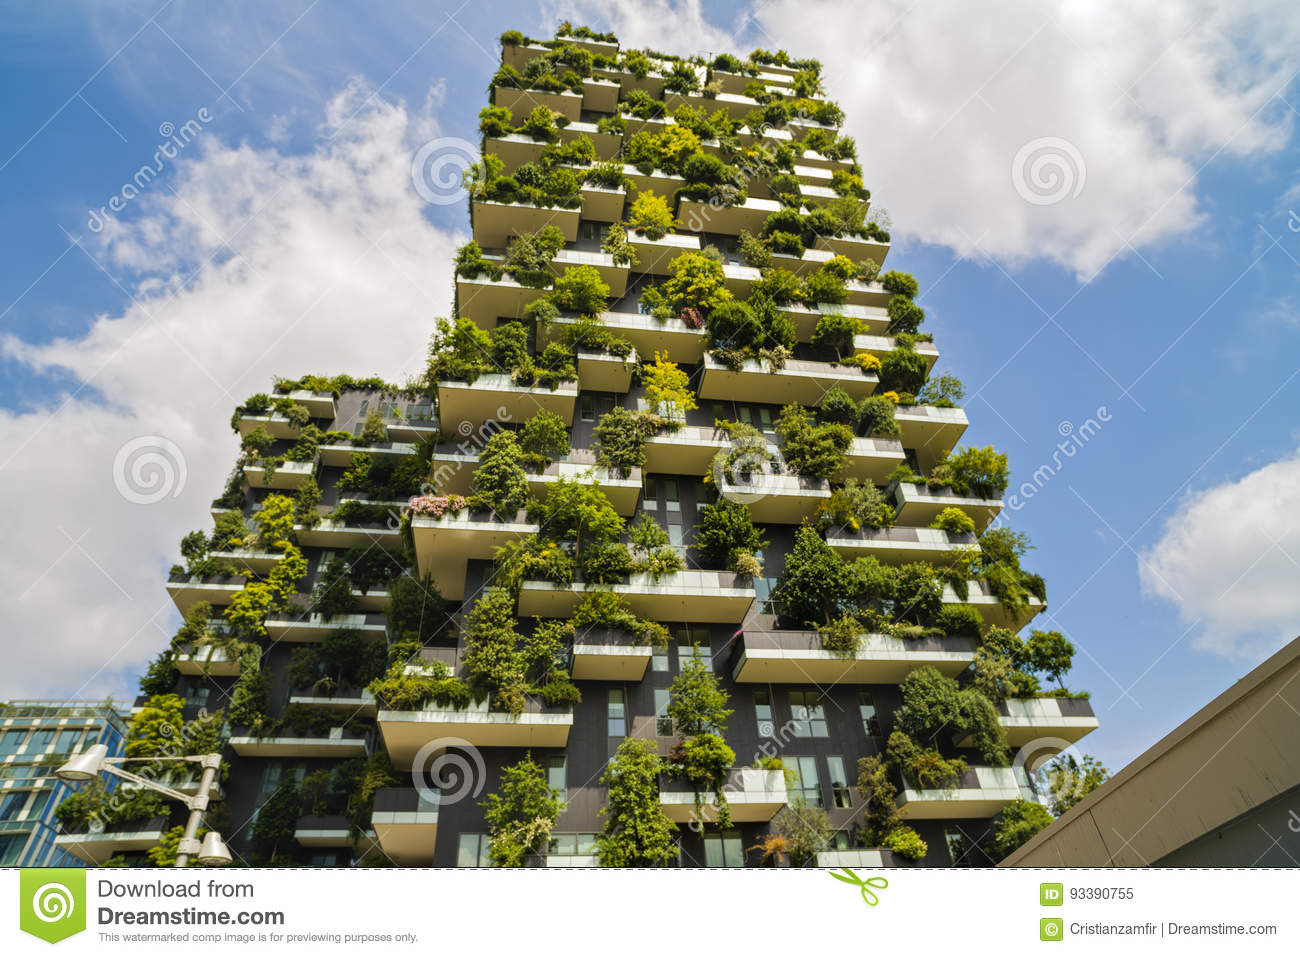 milan italy may 28 2017 bosco verticale vertical forest l editorial image image 93390755. Black Bedroom Furniture Sets. Home Design Ideas